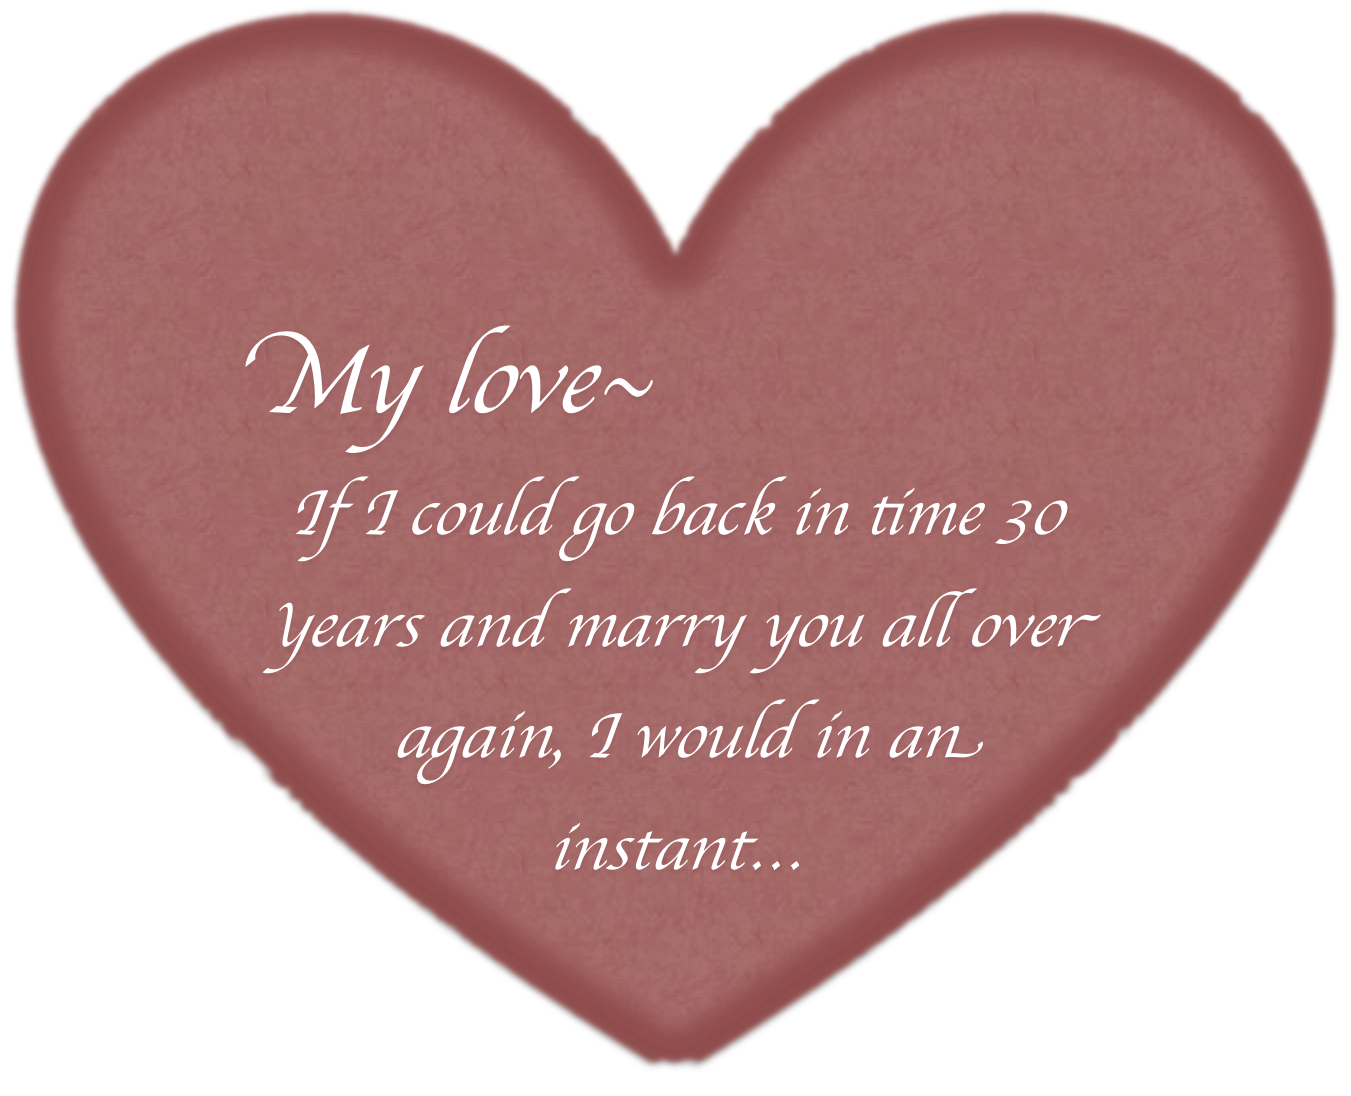 HalfHearted Valentines Day Cards – Good Valentines Day Cards